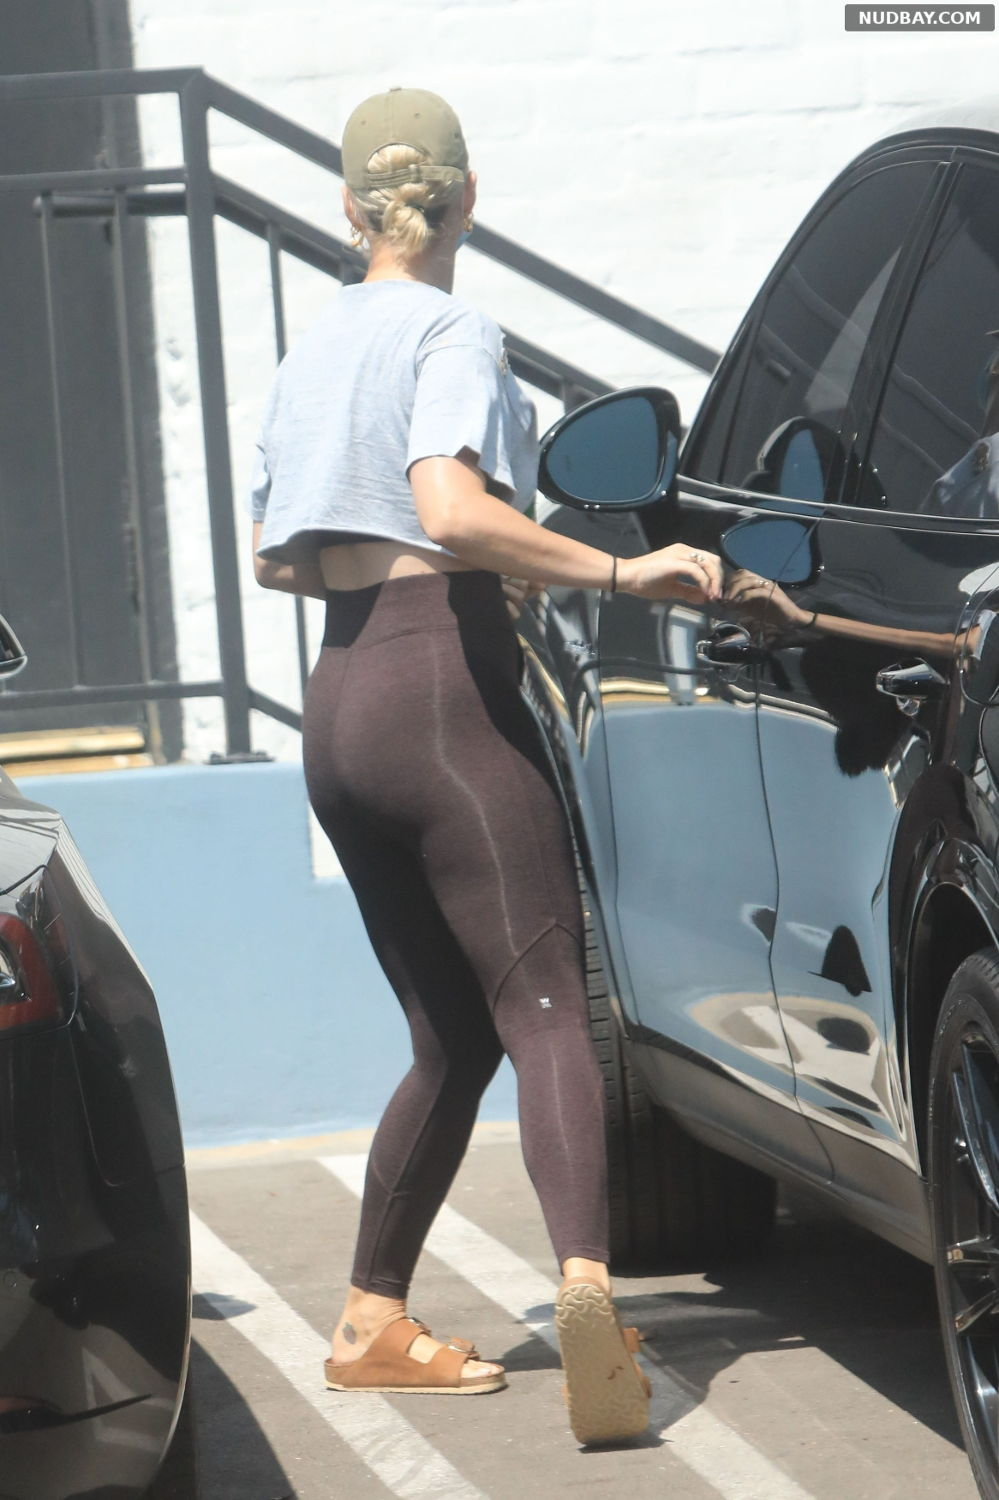 Katy Perry Booty Out and about in Beverly Hills Aug 14 2021